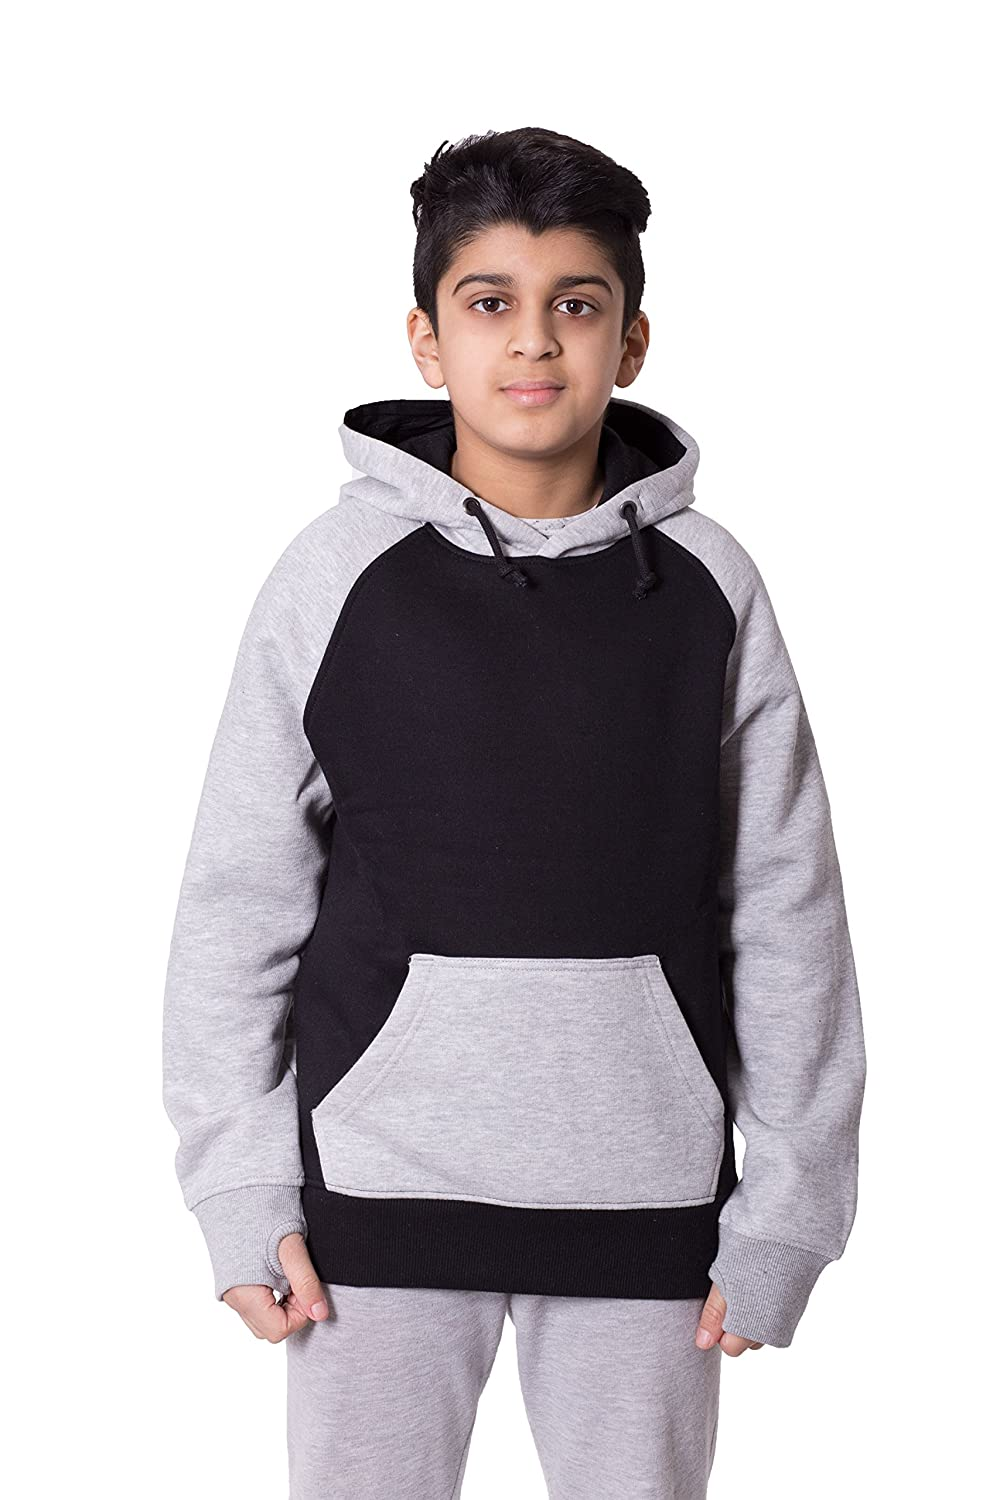 Boys Kids Contrast Colour Hoodie Sweatshirt Black) A1074-4